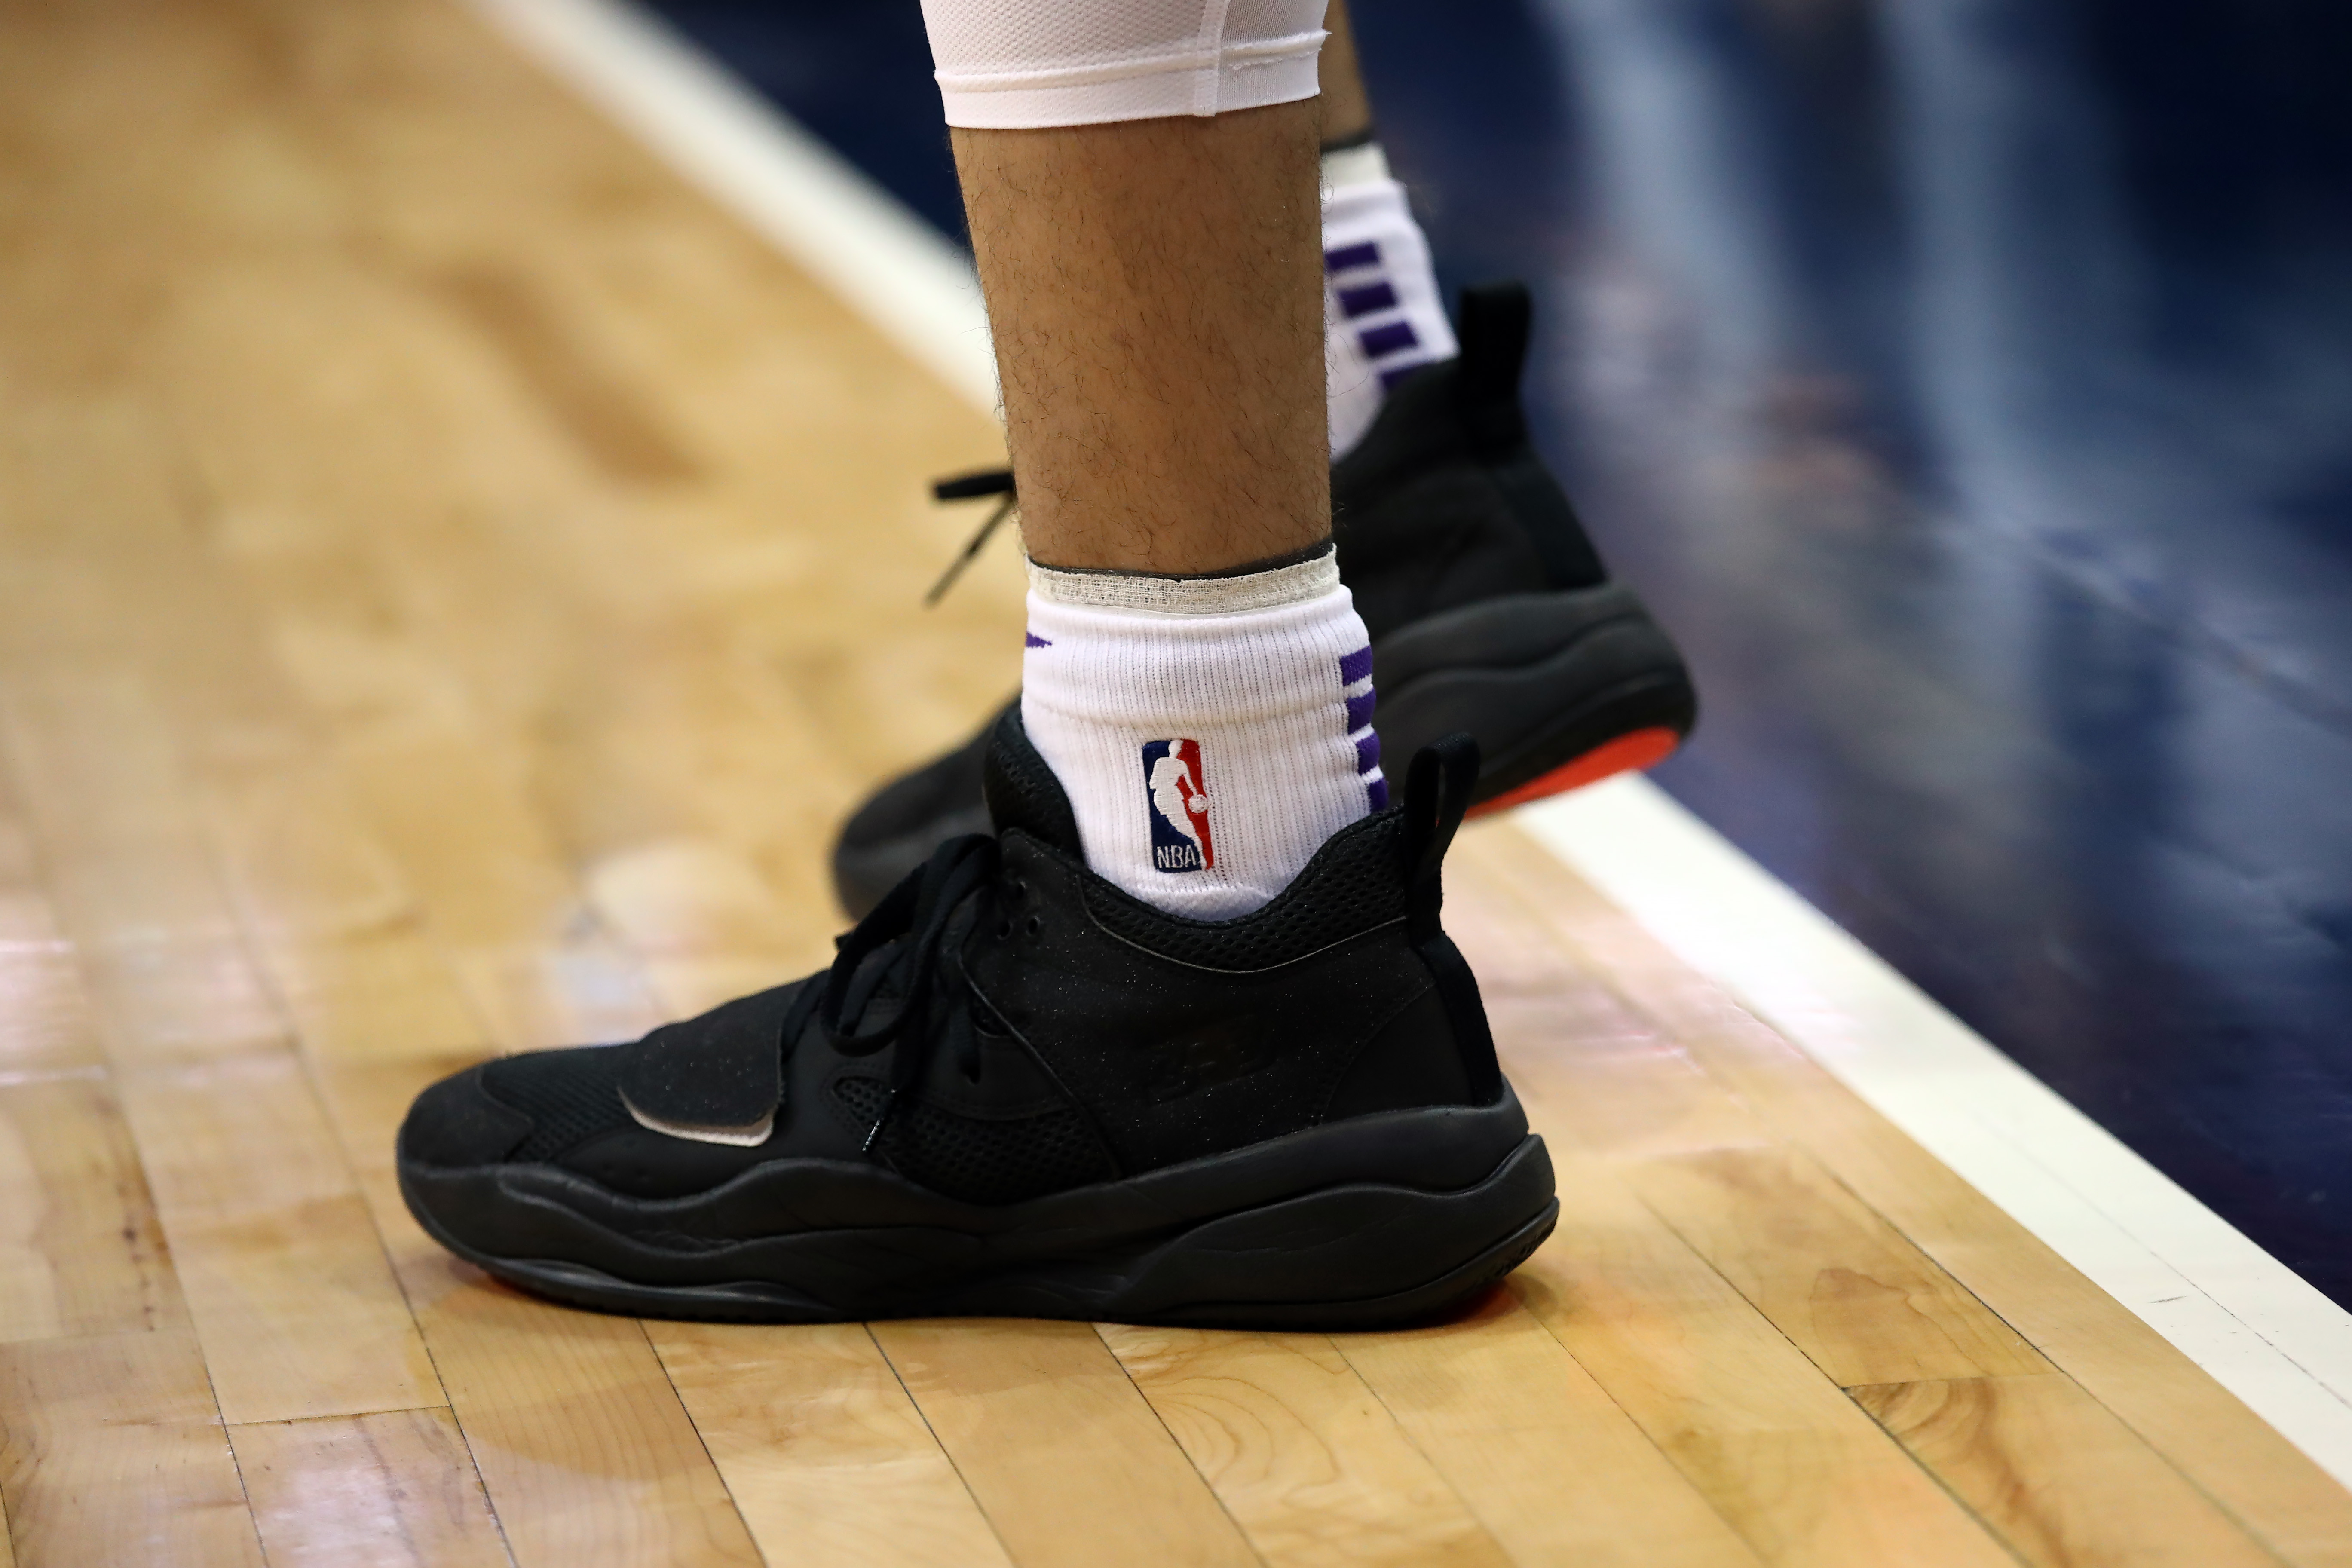 0c0ca6d13ca The Lakers have reportedly checked to see if Big Baller Brand shoes could  be causing Lonzo Ball to have ankle problems